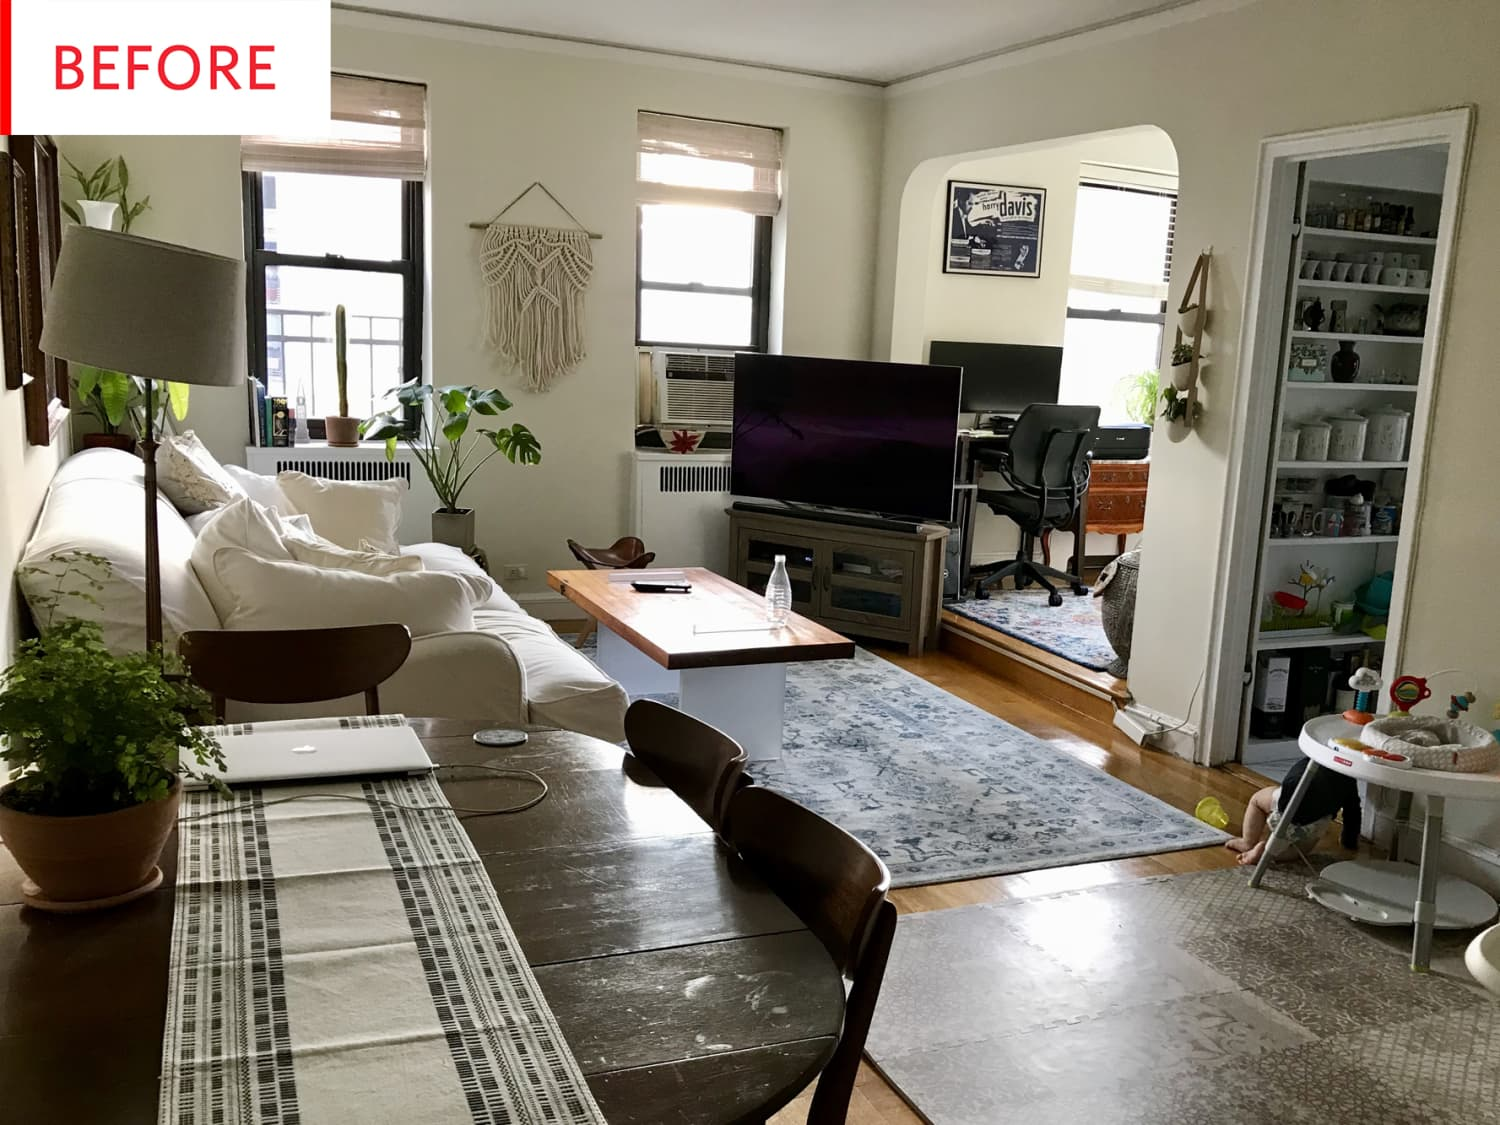 Furniture Rearranging Ideas For Small Apartment Living